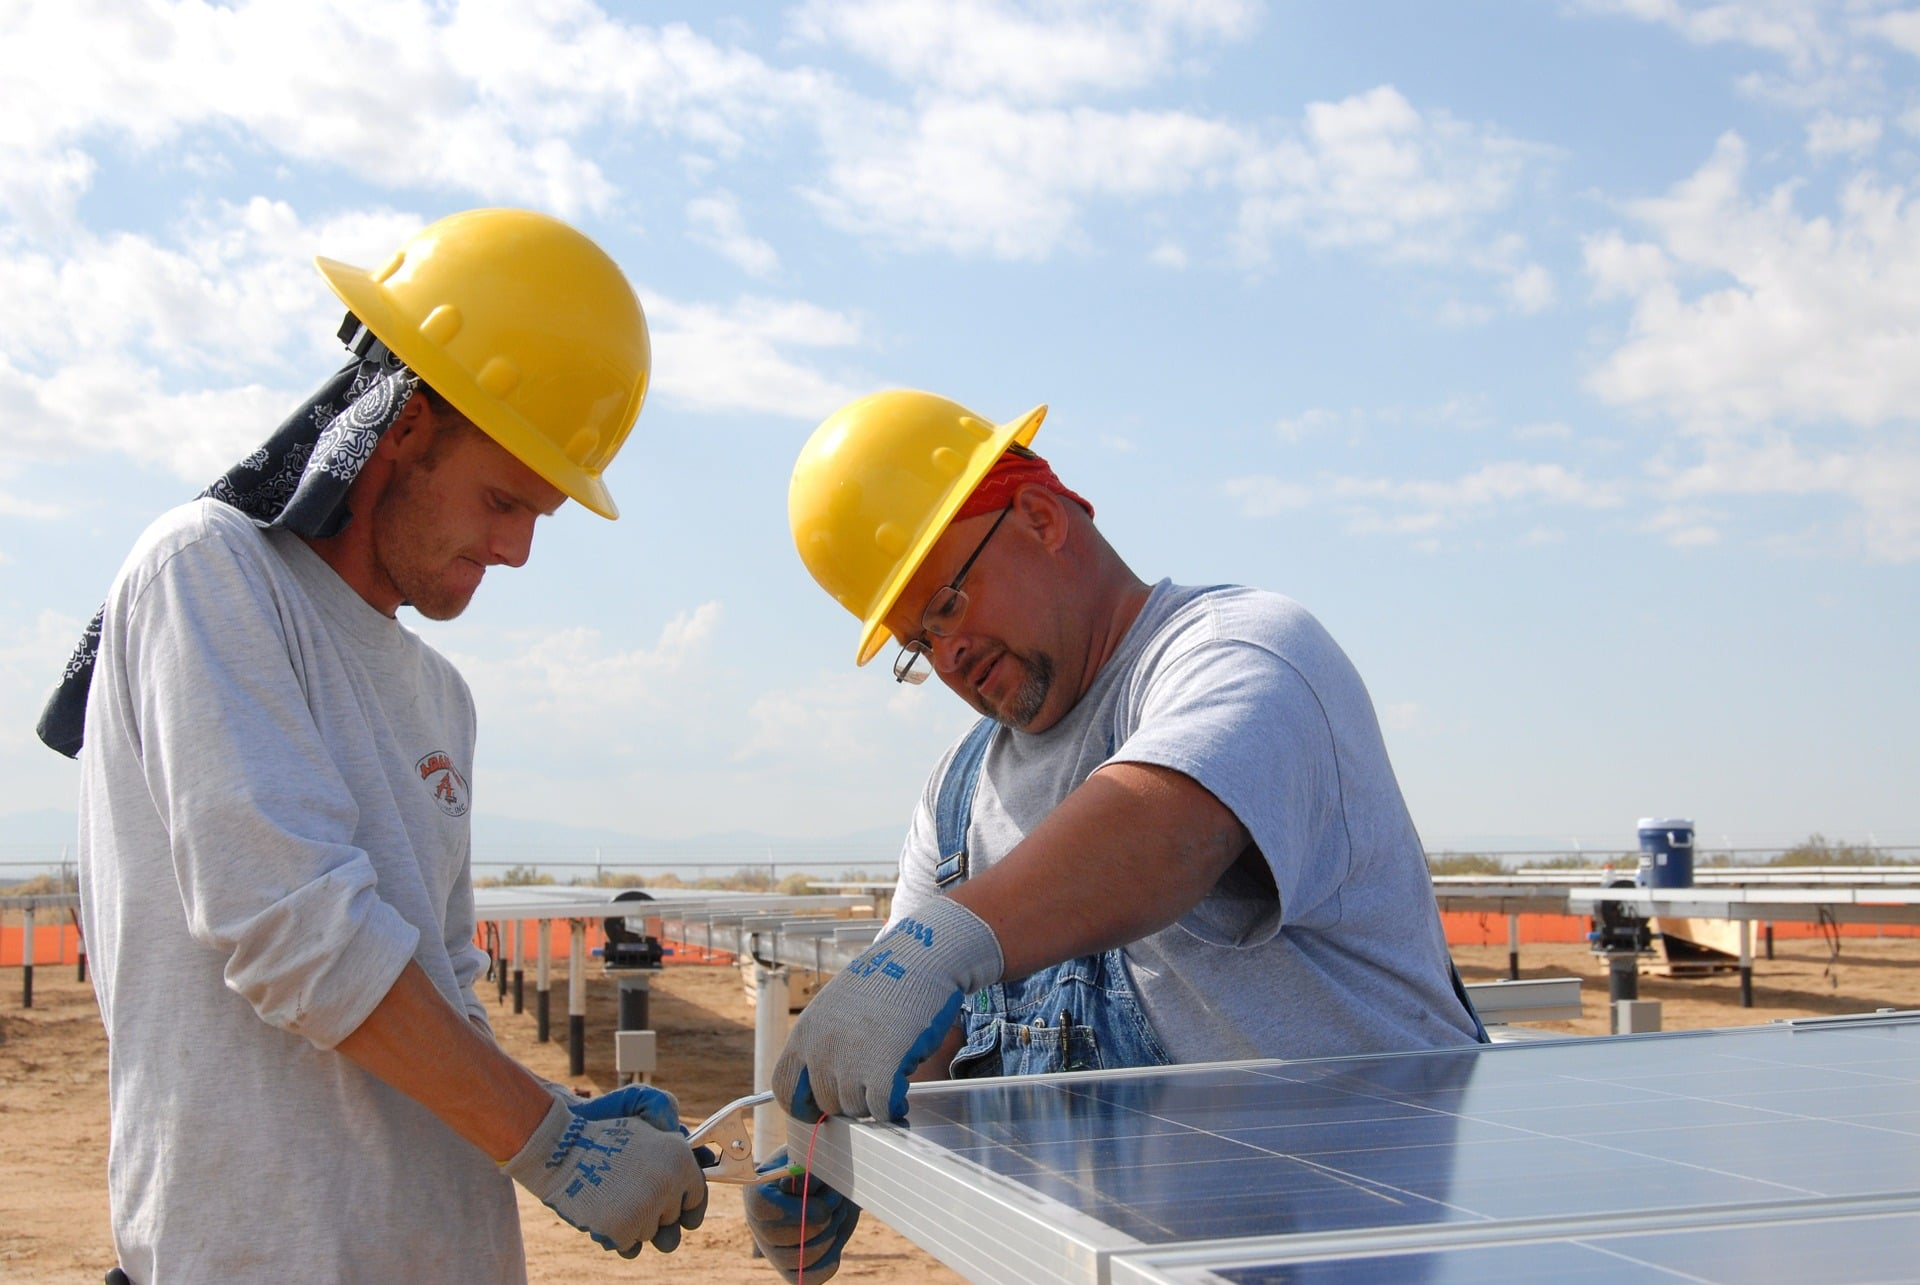 How much should a Solar Panel weigh?